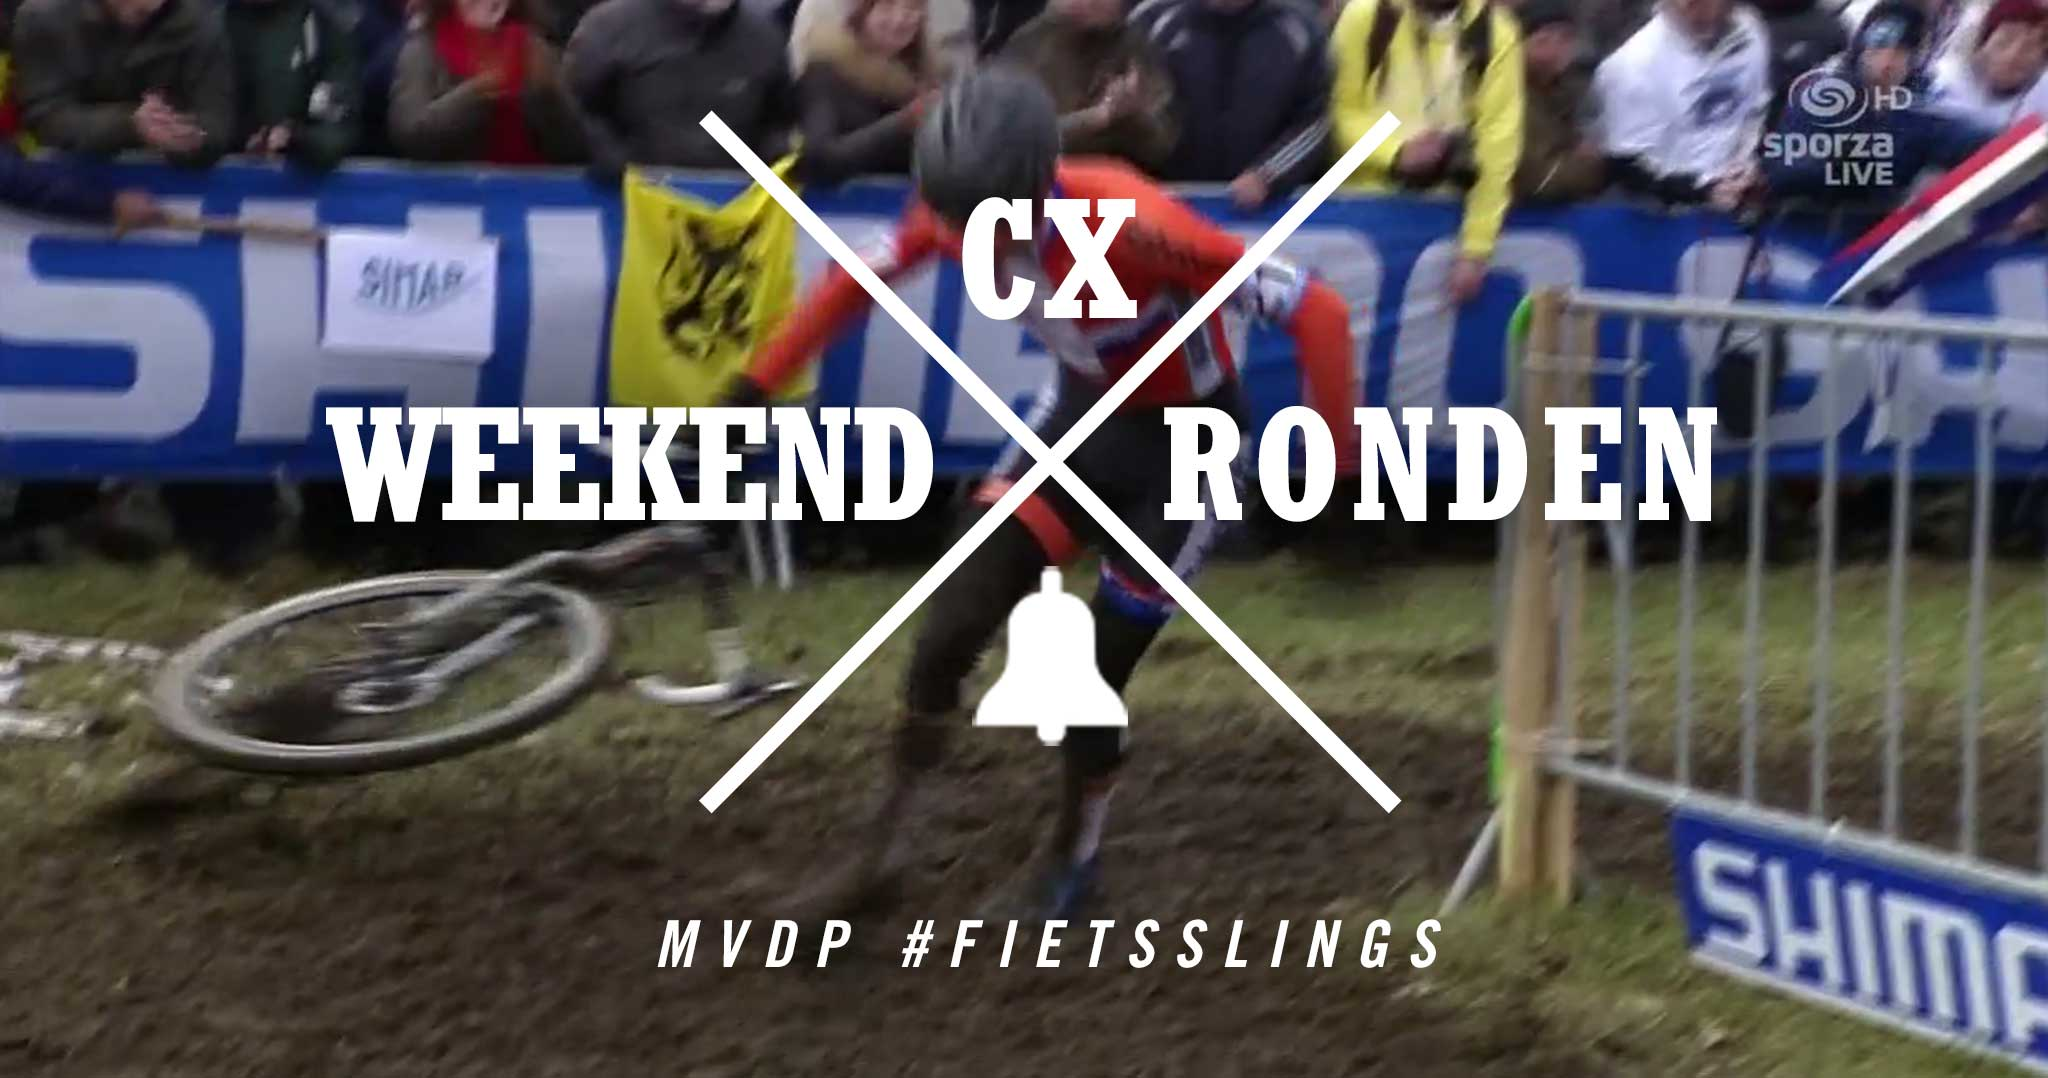 Weekend CX Ronden: All The MVDP Fietsslings at #CXWorlds Tabor